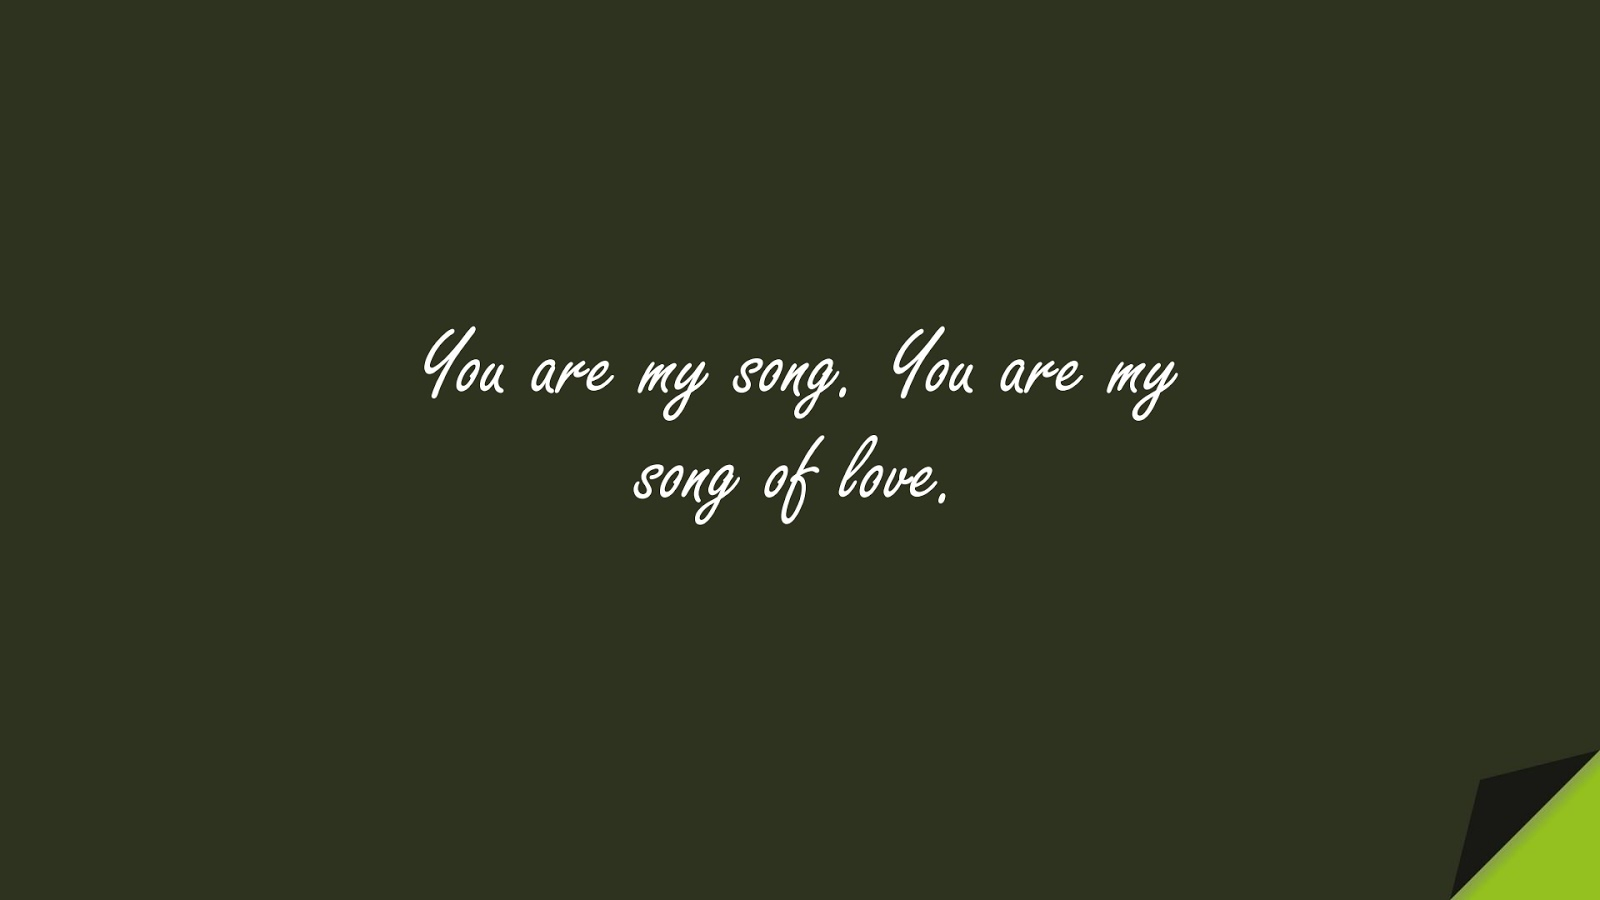 You are my song. You are my song of love.FALSE